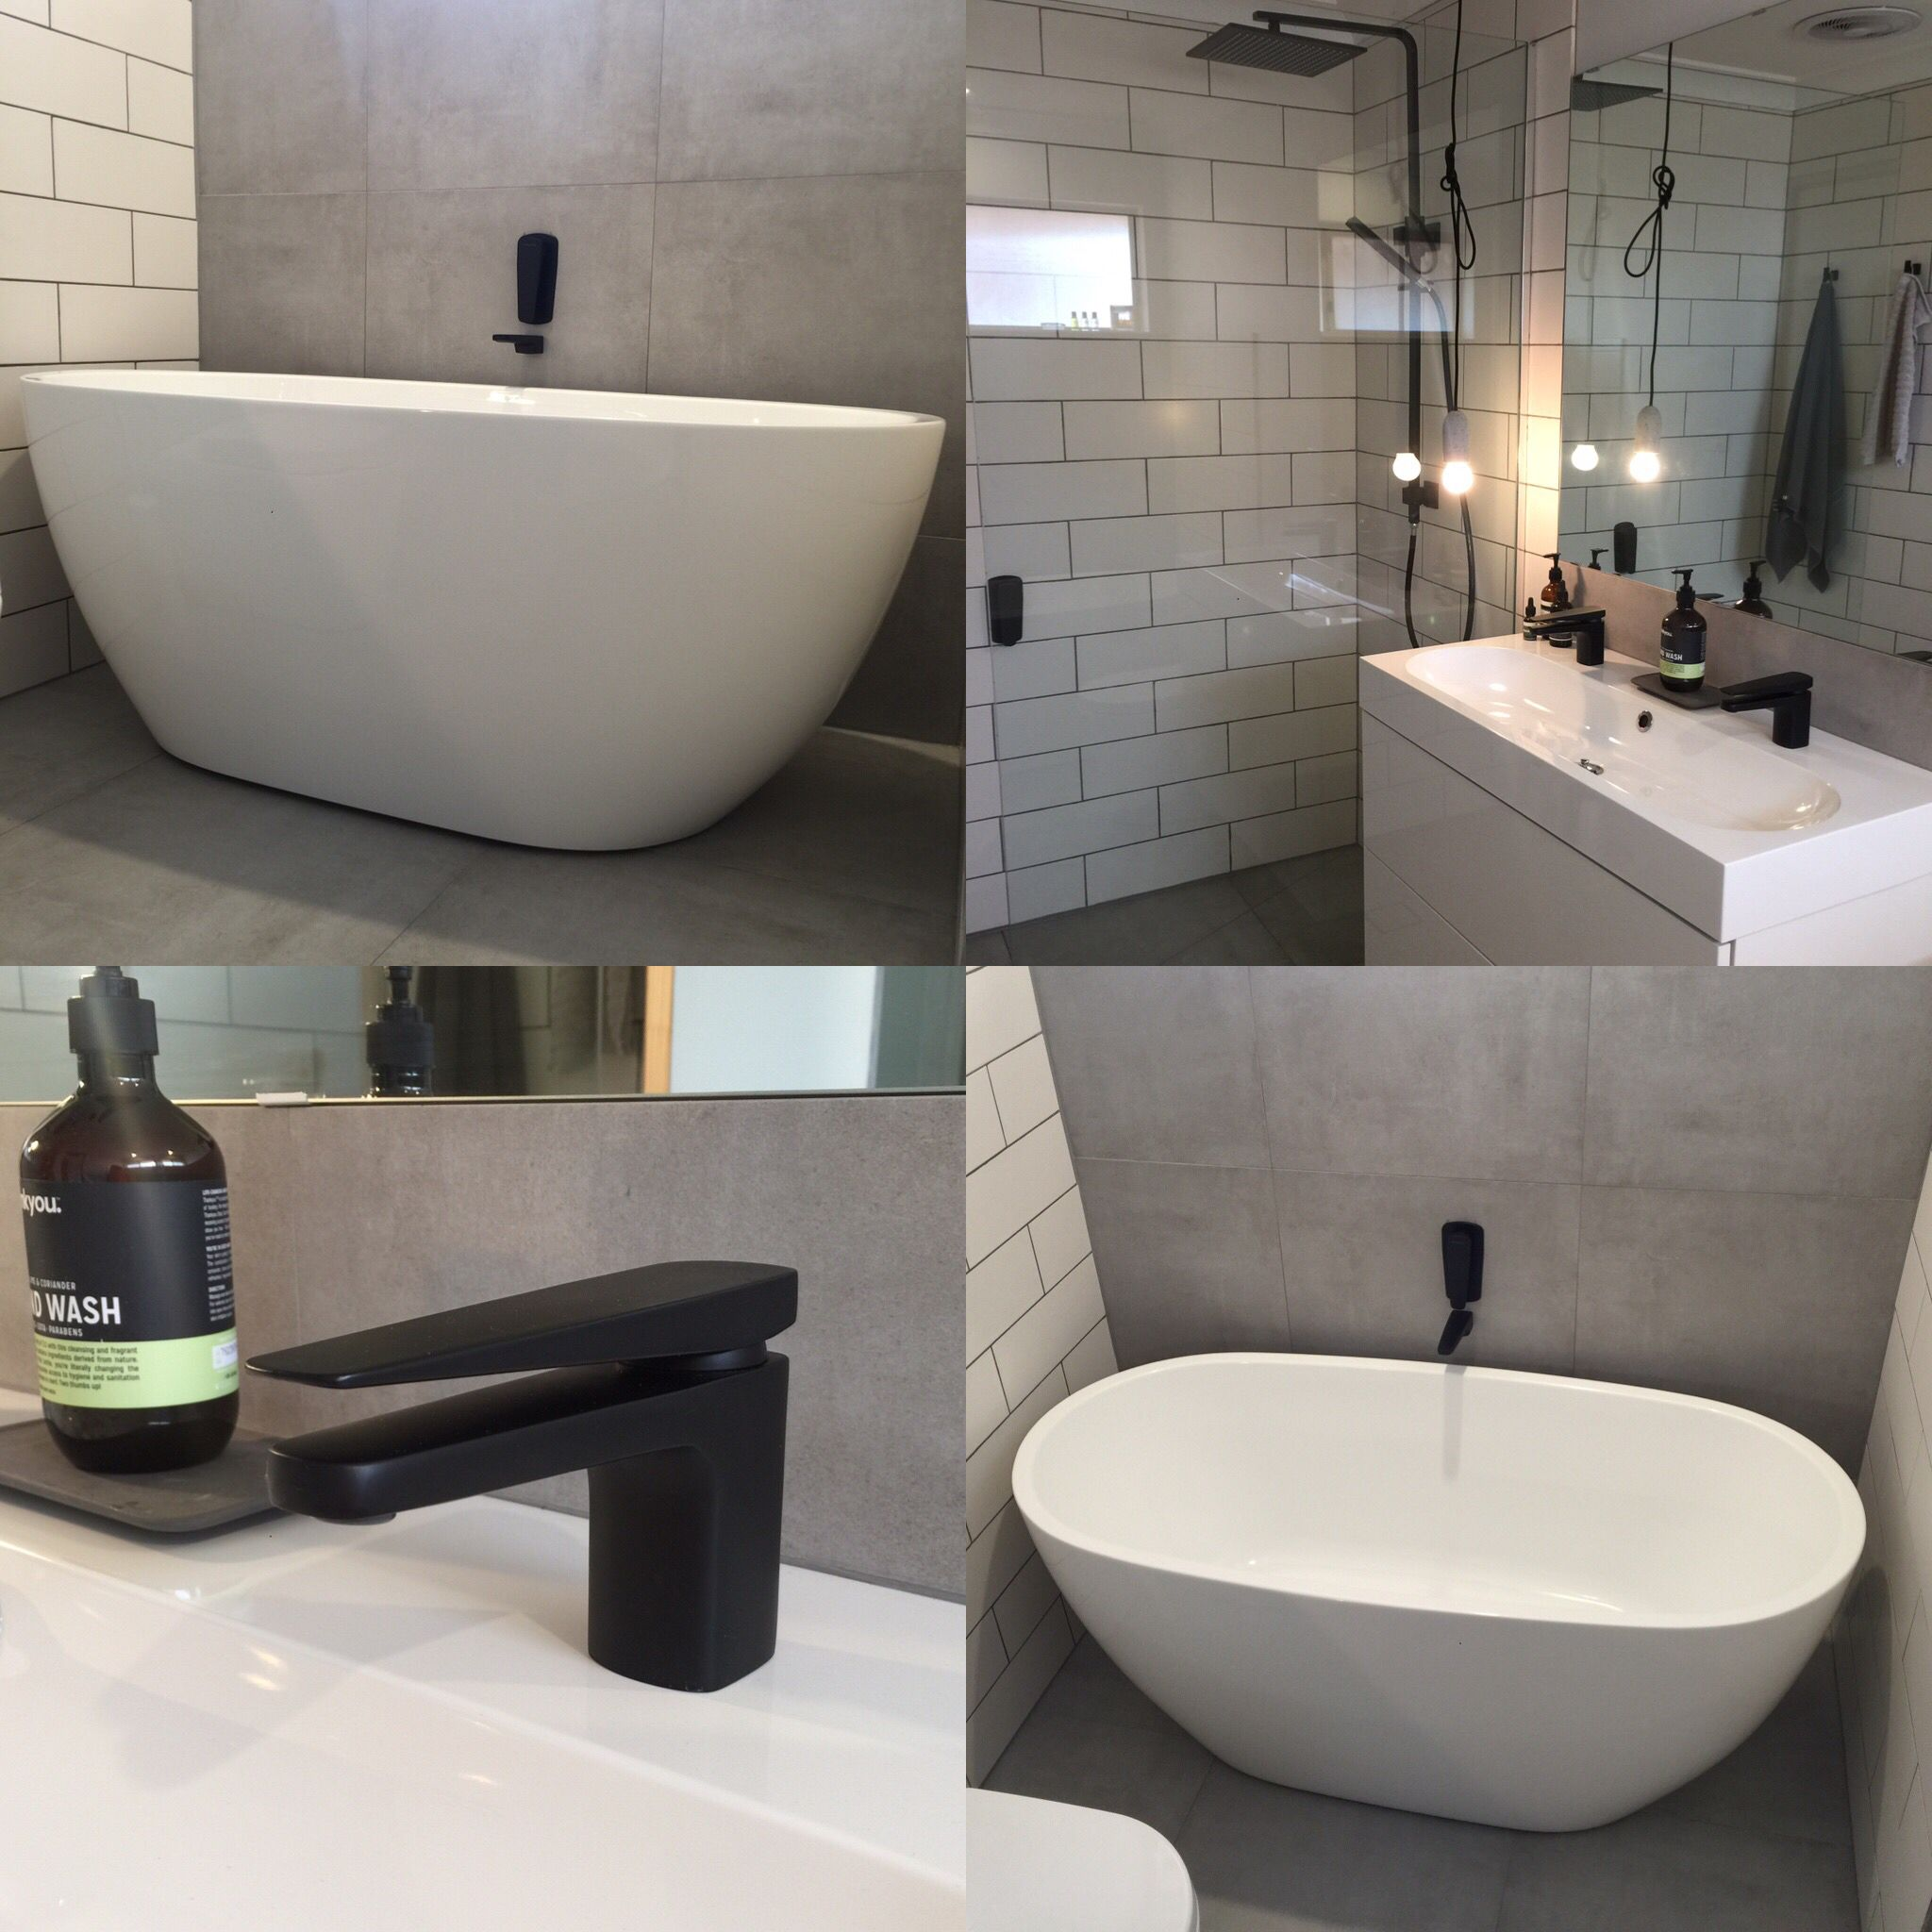 Mondella matte black tapware wall spout and wall mixers Meir matte black combination shower